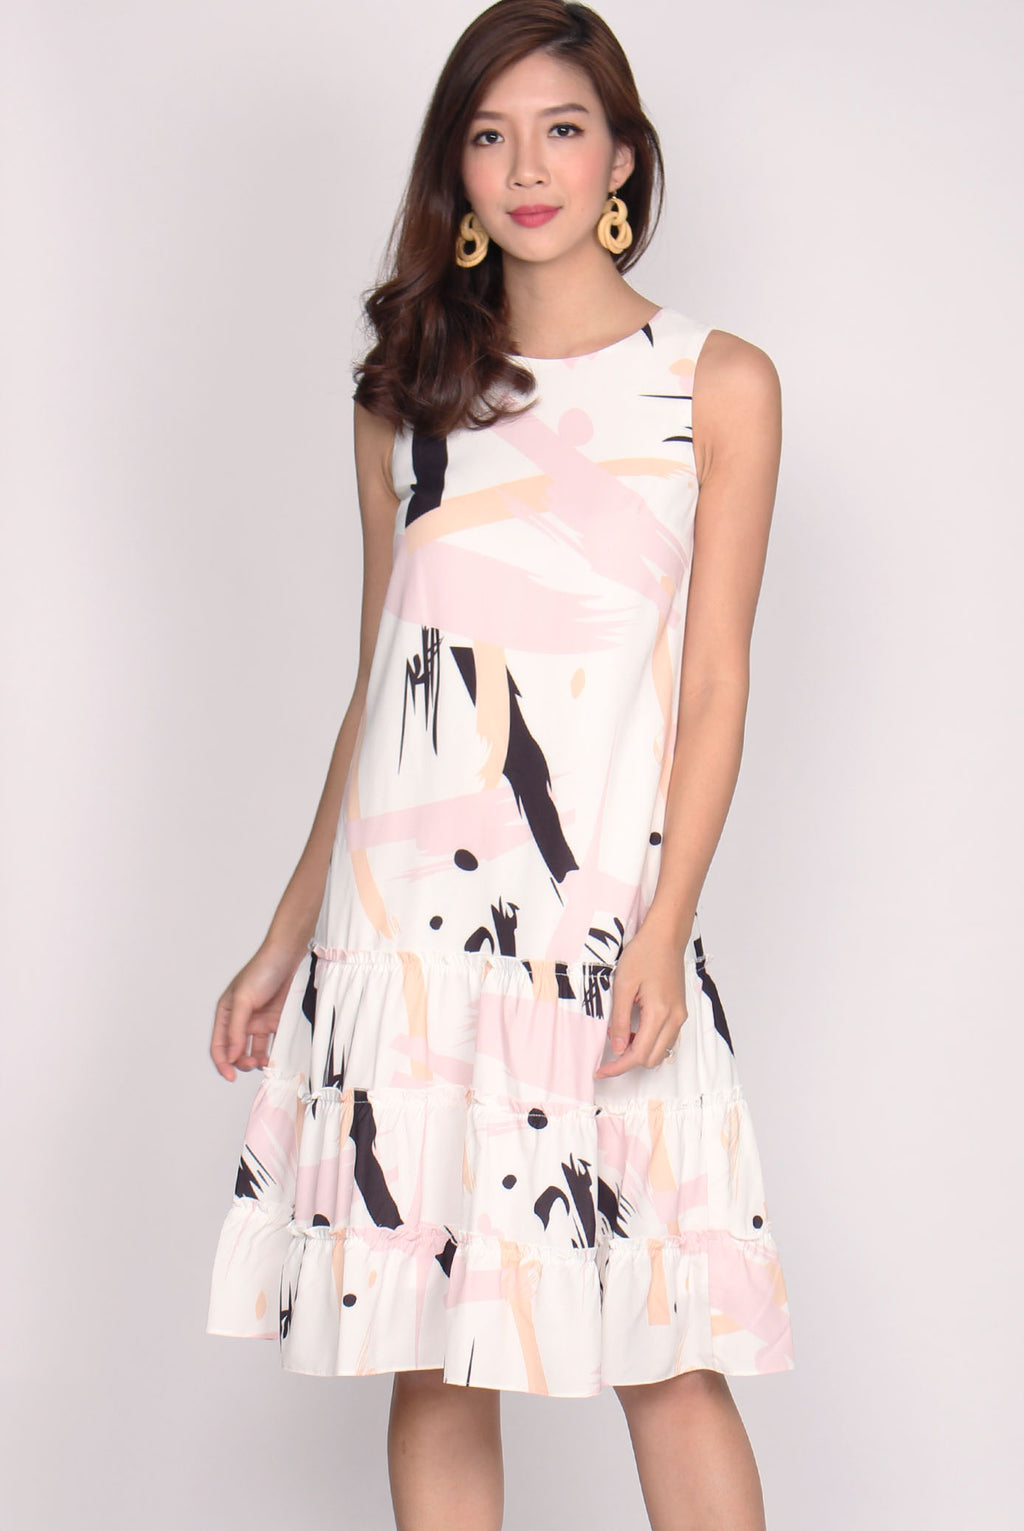 *Restock* Patrizio Triple Ruffle Midi Dress In Black Pink